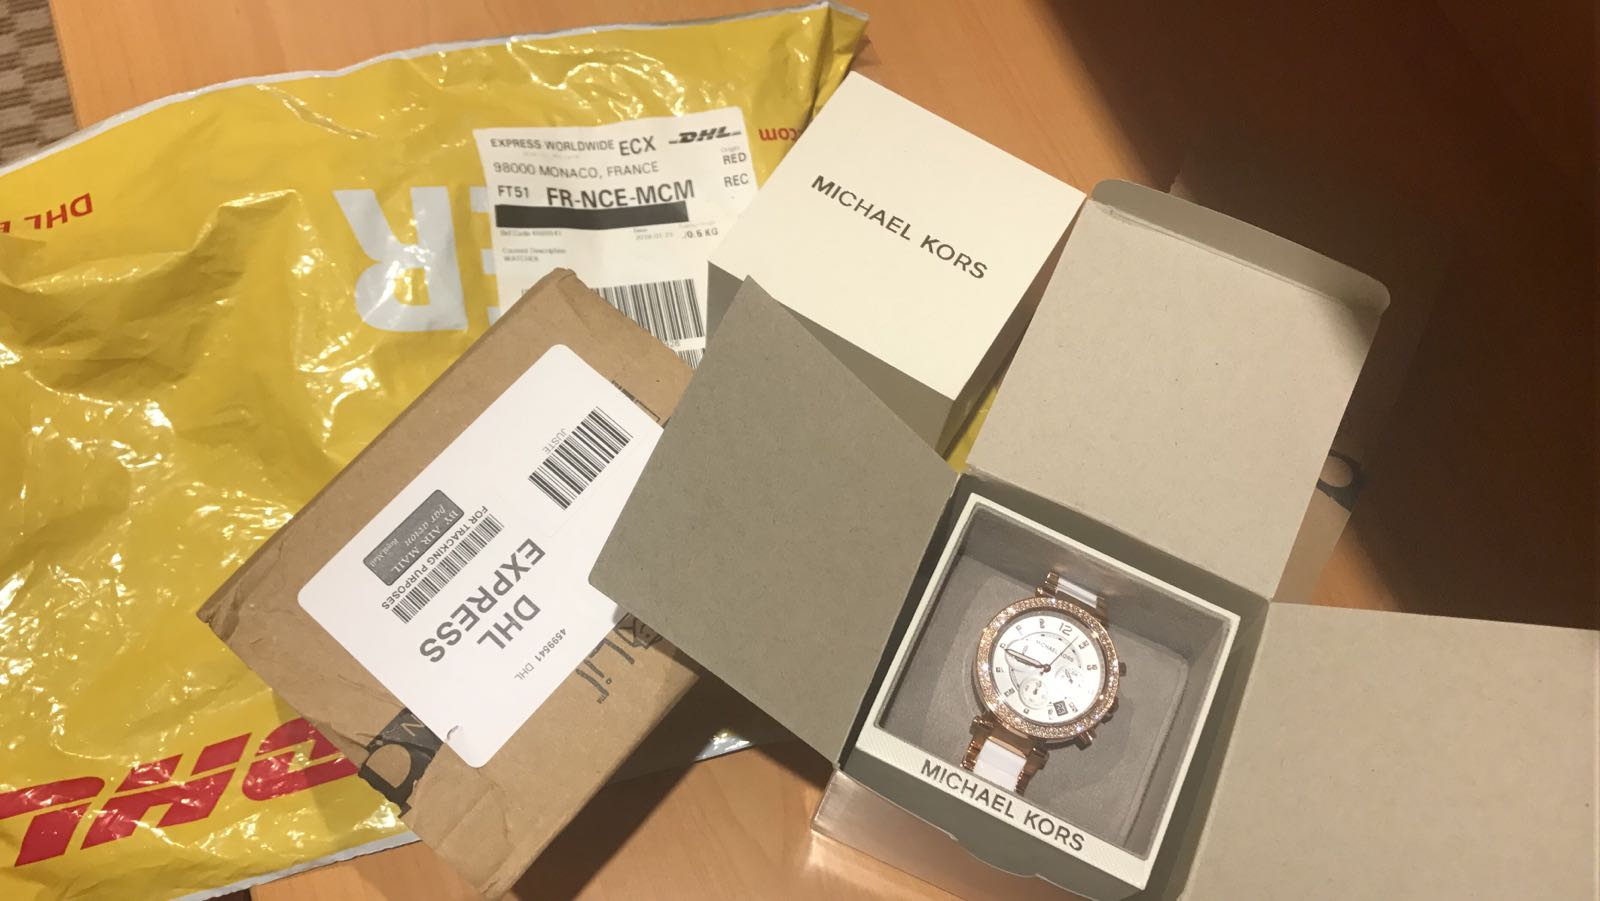 f077d362dbd This is a great shop. Highly recommended shop. 100% AUTHENTIC and fast  shipment. This model of michael kors watch for women is really stunning..i  love it!